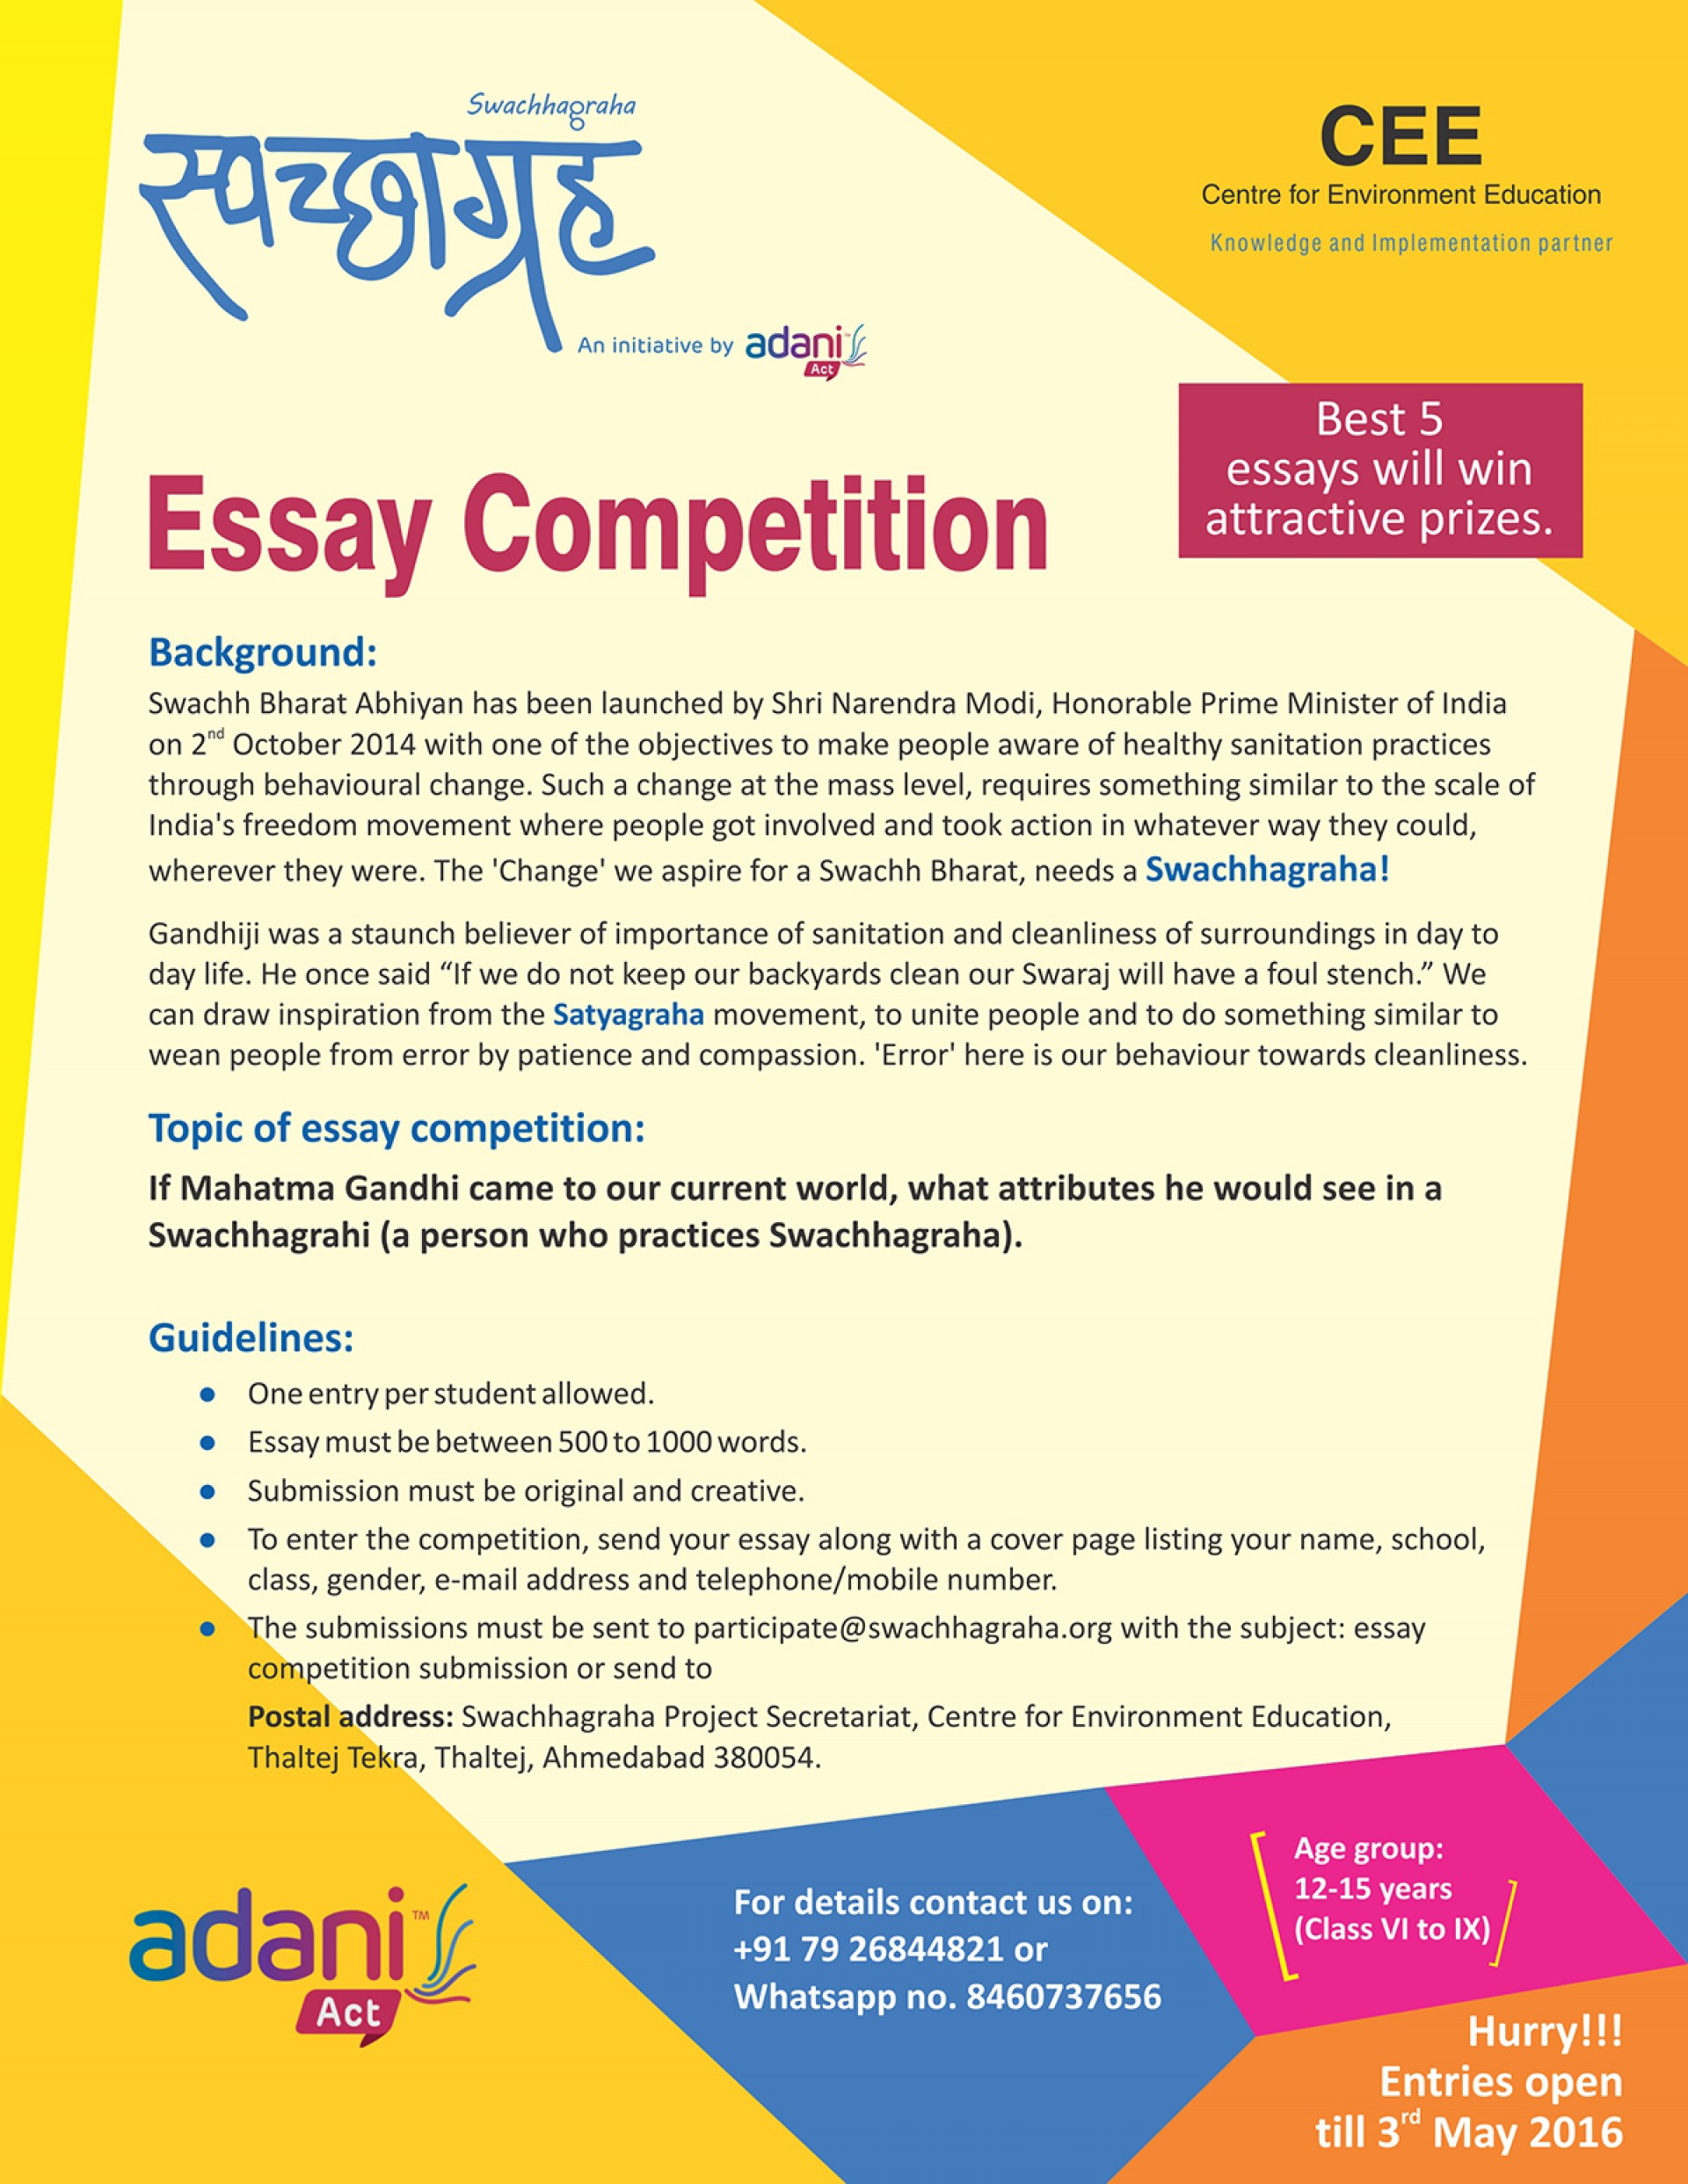 011 20180129171946essay20competition Essay About Cleanliness In School Phenomenal Campaign On Toilets And Its Surrounding Persuasive 1920